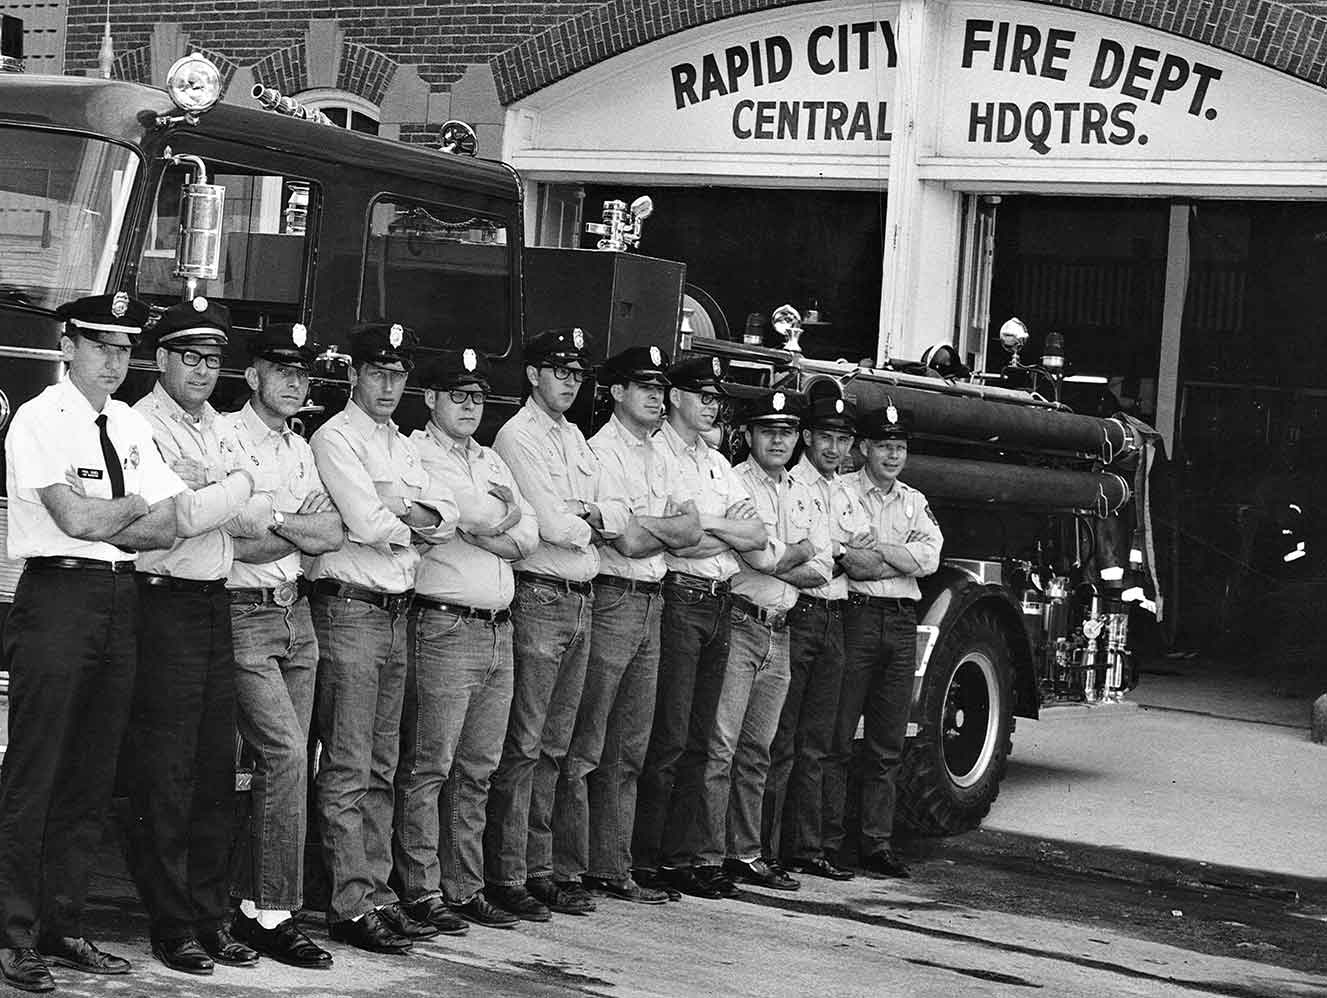 11 firemen stand outside of Rapid City's central headquarers